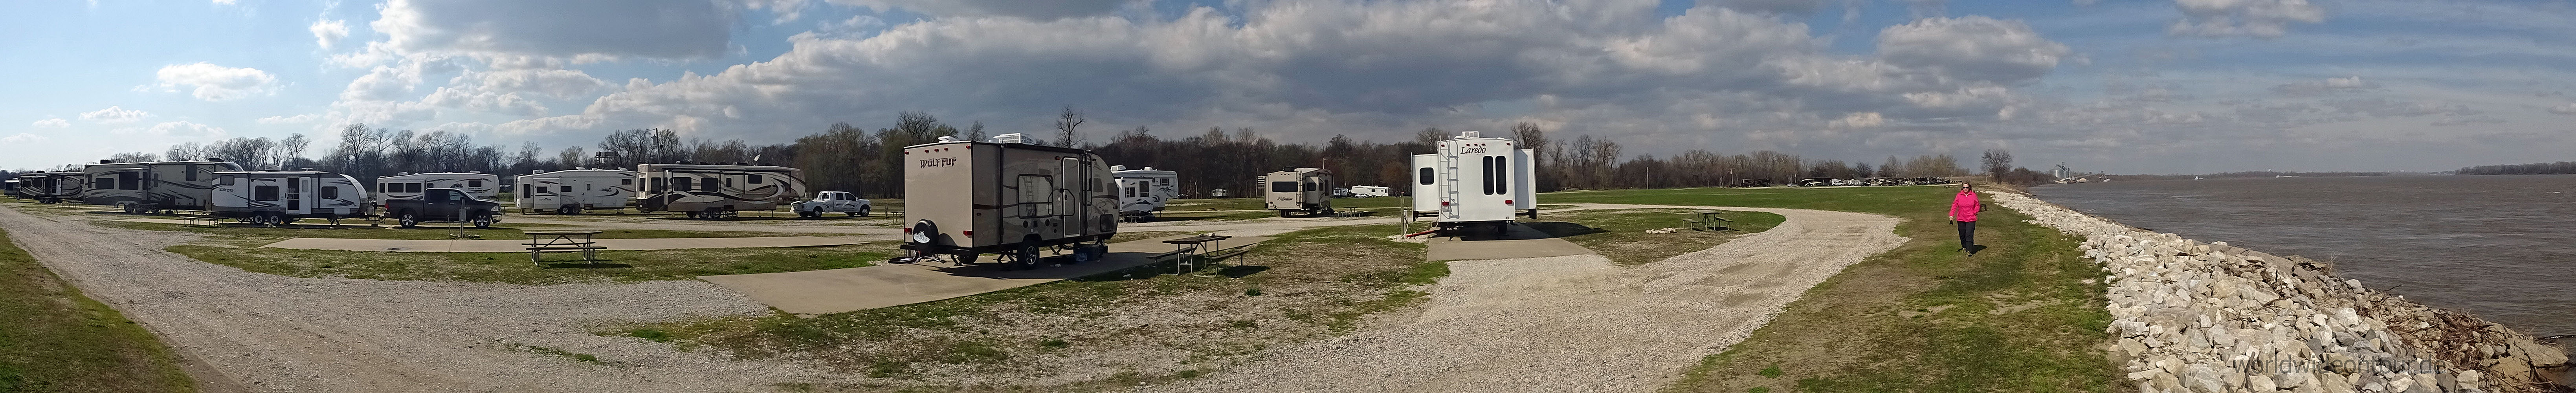 Pano entlang am Mississippi whesim